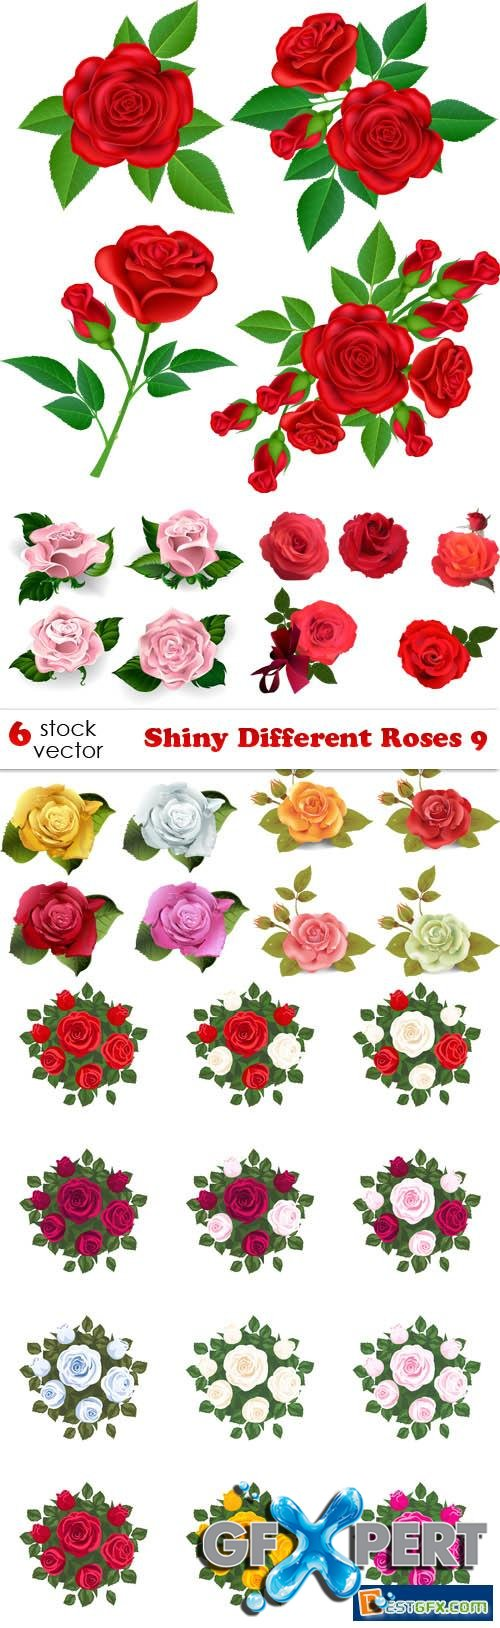 Vectors - Shiny Different Roses 9